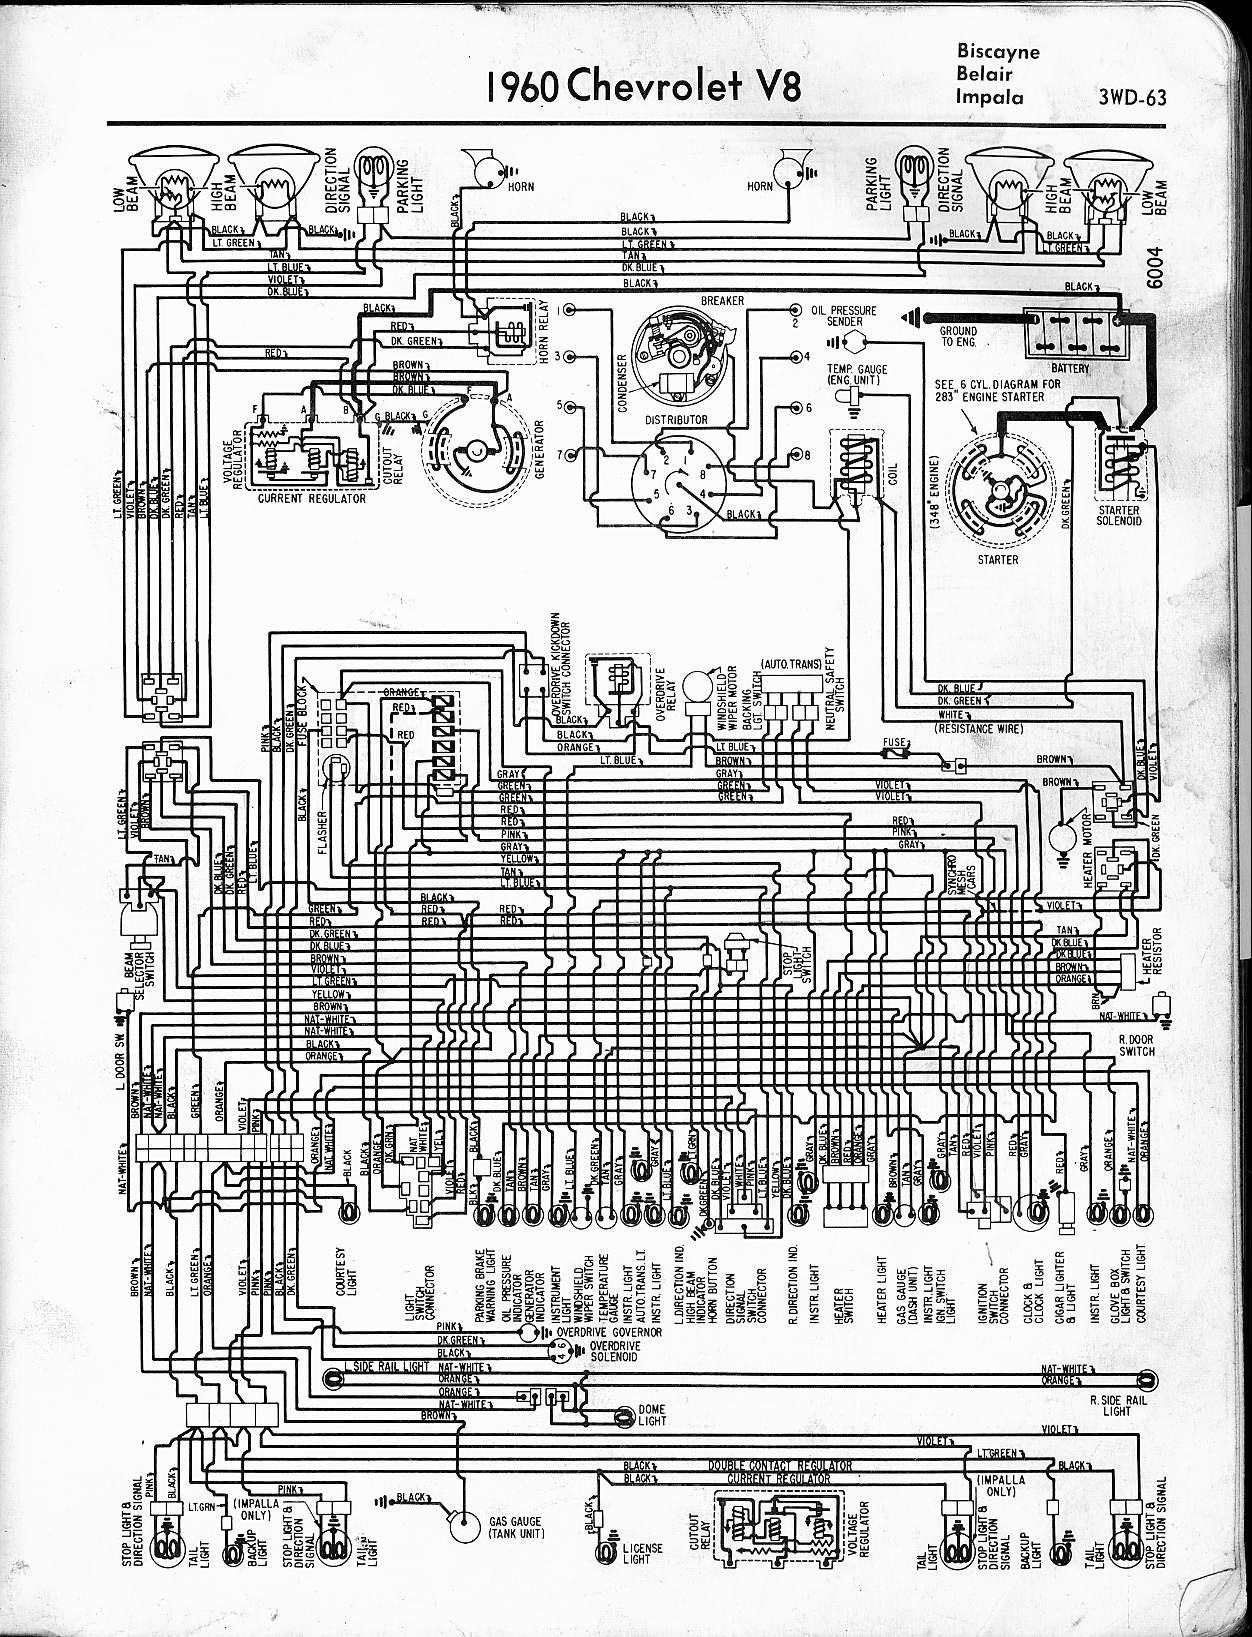 chevrolet cruze diagram wiring schematic  wiring diagram